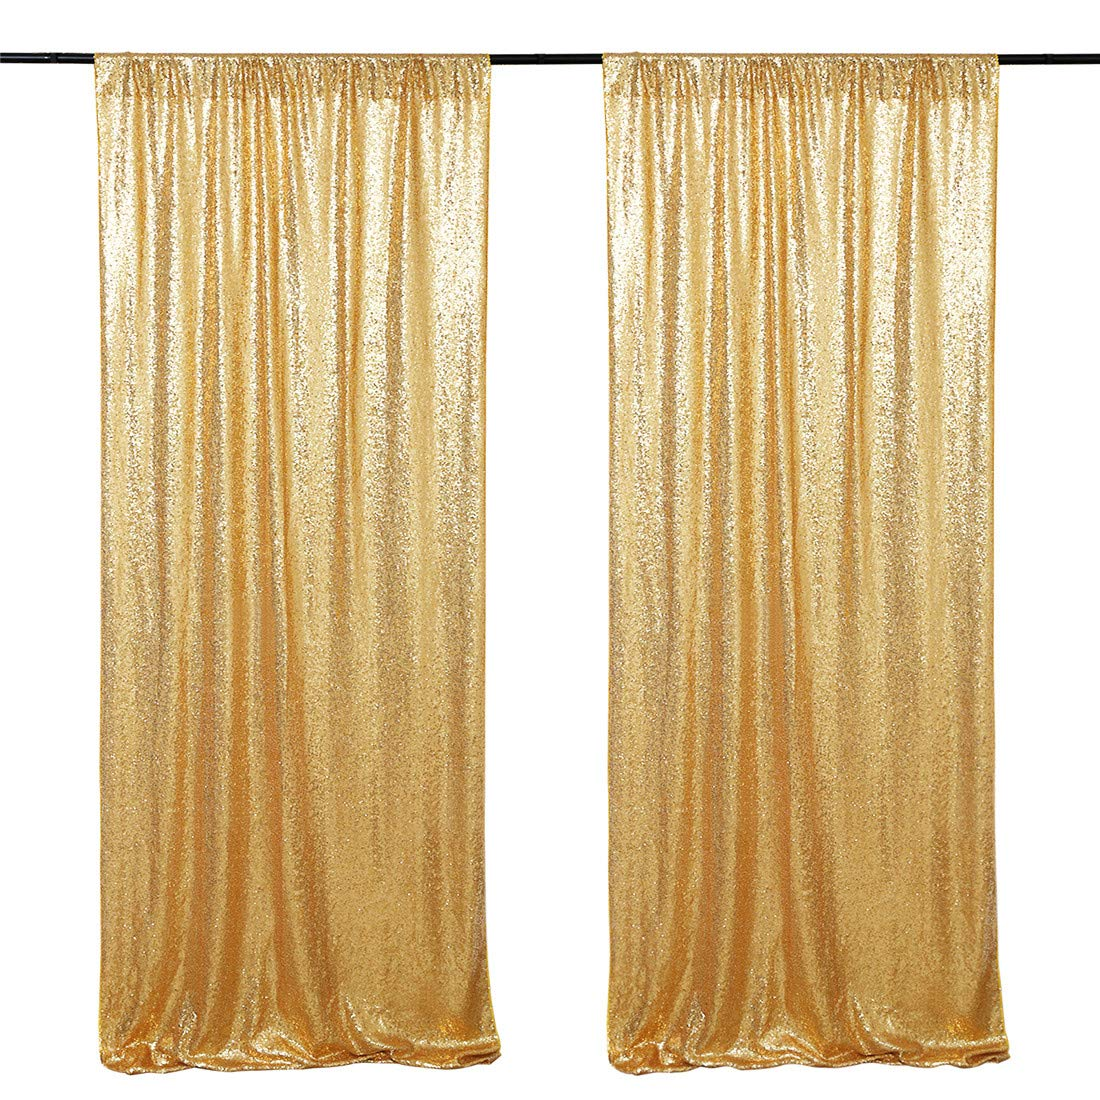 Sequin Backdrop Curtain Panel 2 Pieces 2FTx8FT Gold Sequin Photography Backdrop for Prom Party Wall Background Decoration by B-COOL